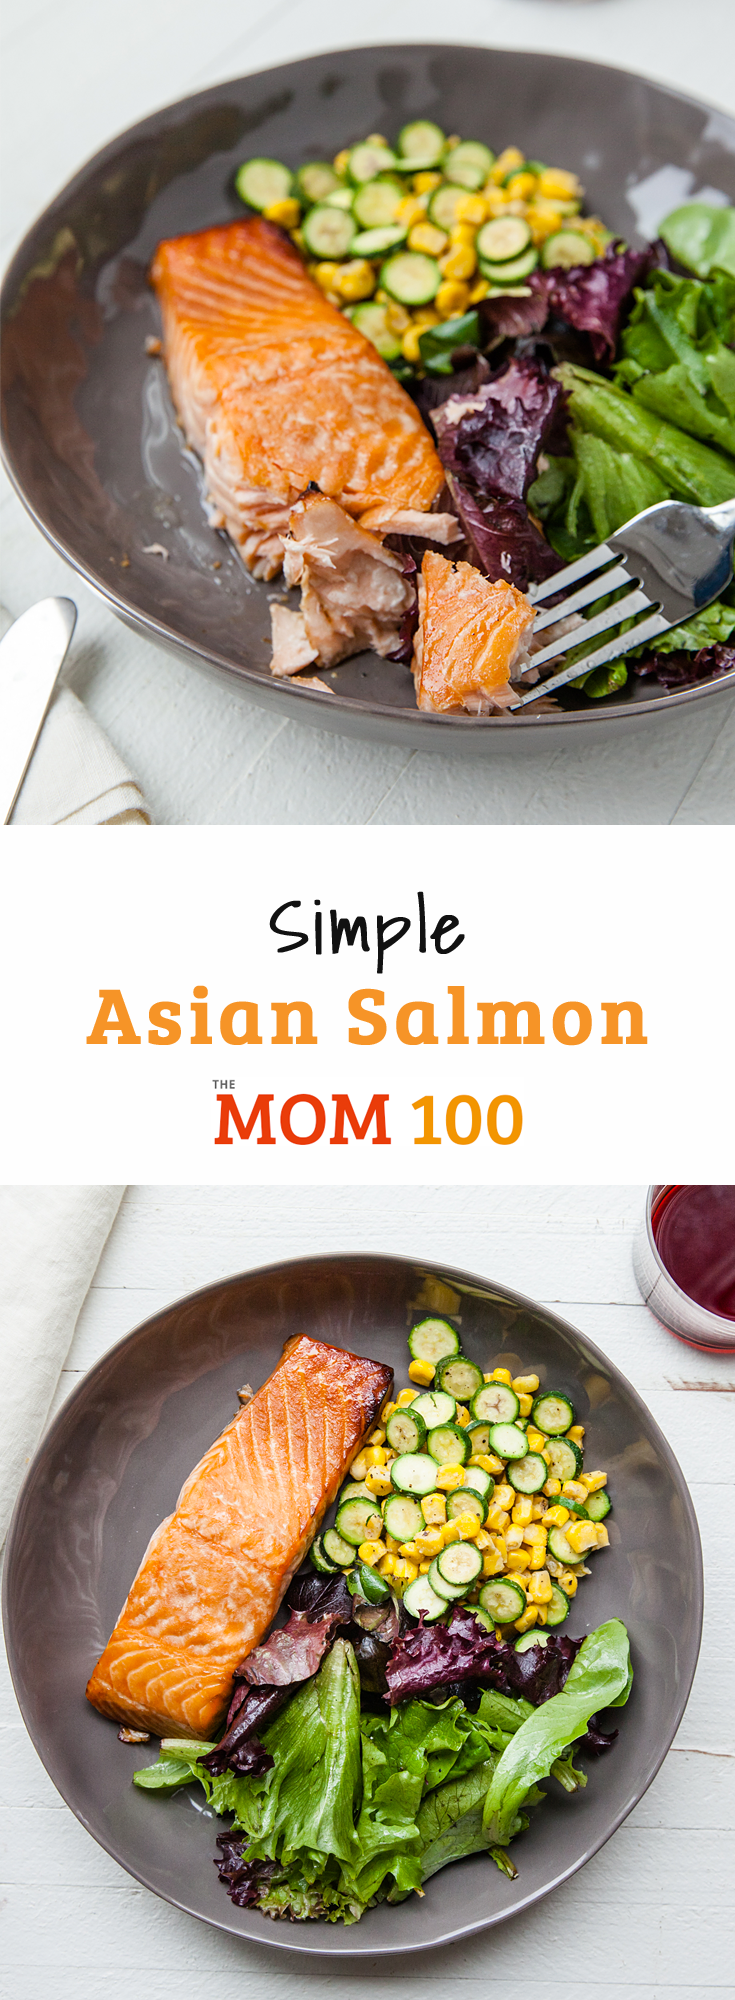 A simple Asian salmon dish that makes everyone happy—including the cook. Check out how easy it is—4 ingredients, plus the salmon.